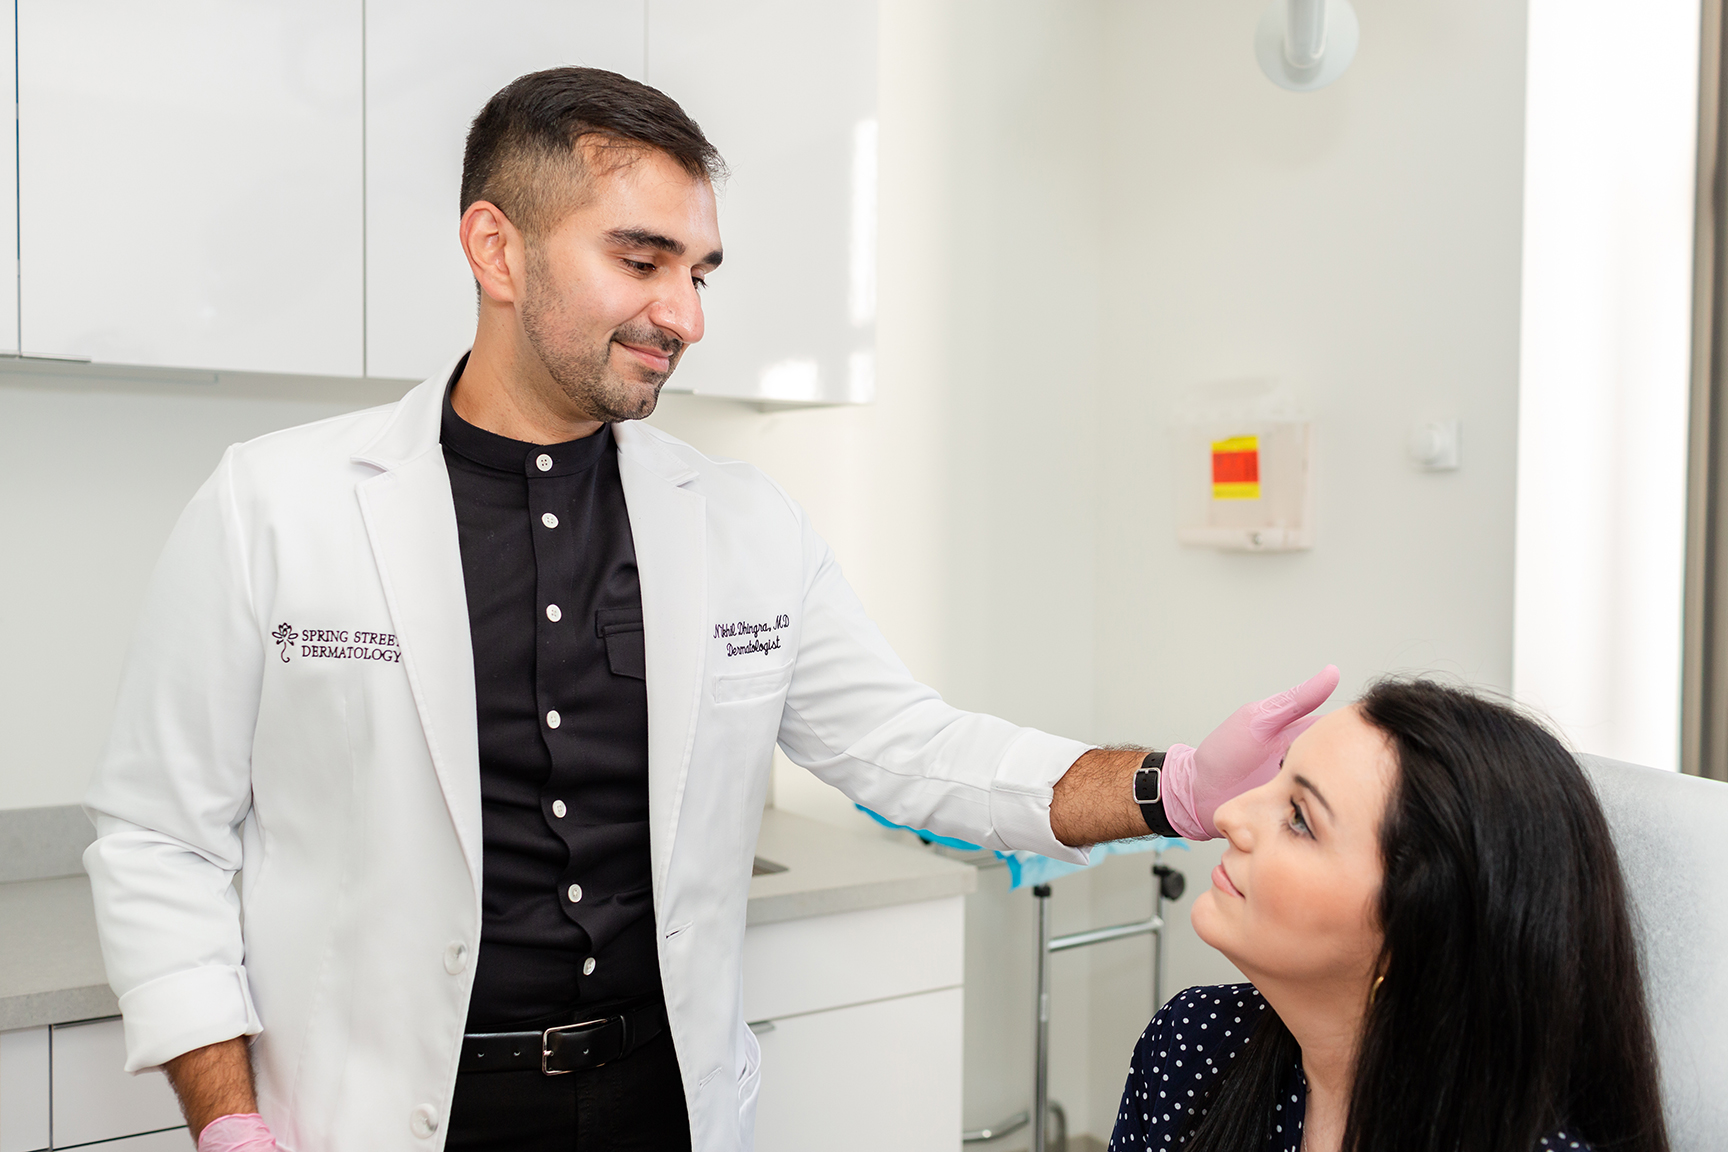 Image showing Dr. Dhingra, board certified dermatologist checking his patient  for cosmetic treatments at Spring Street Dermatology, New York City, NY